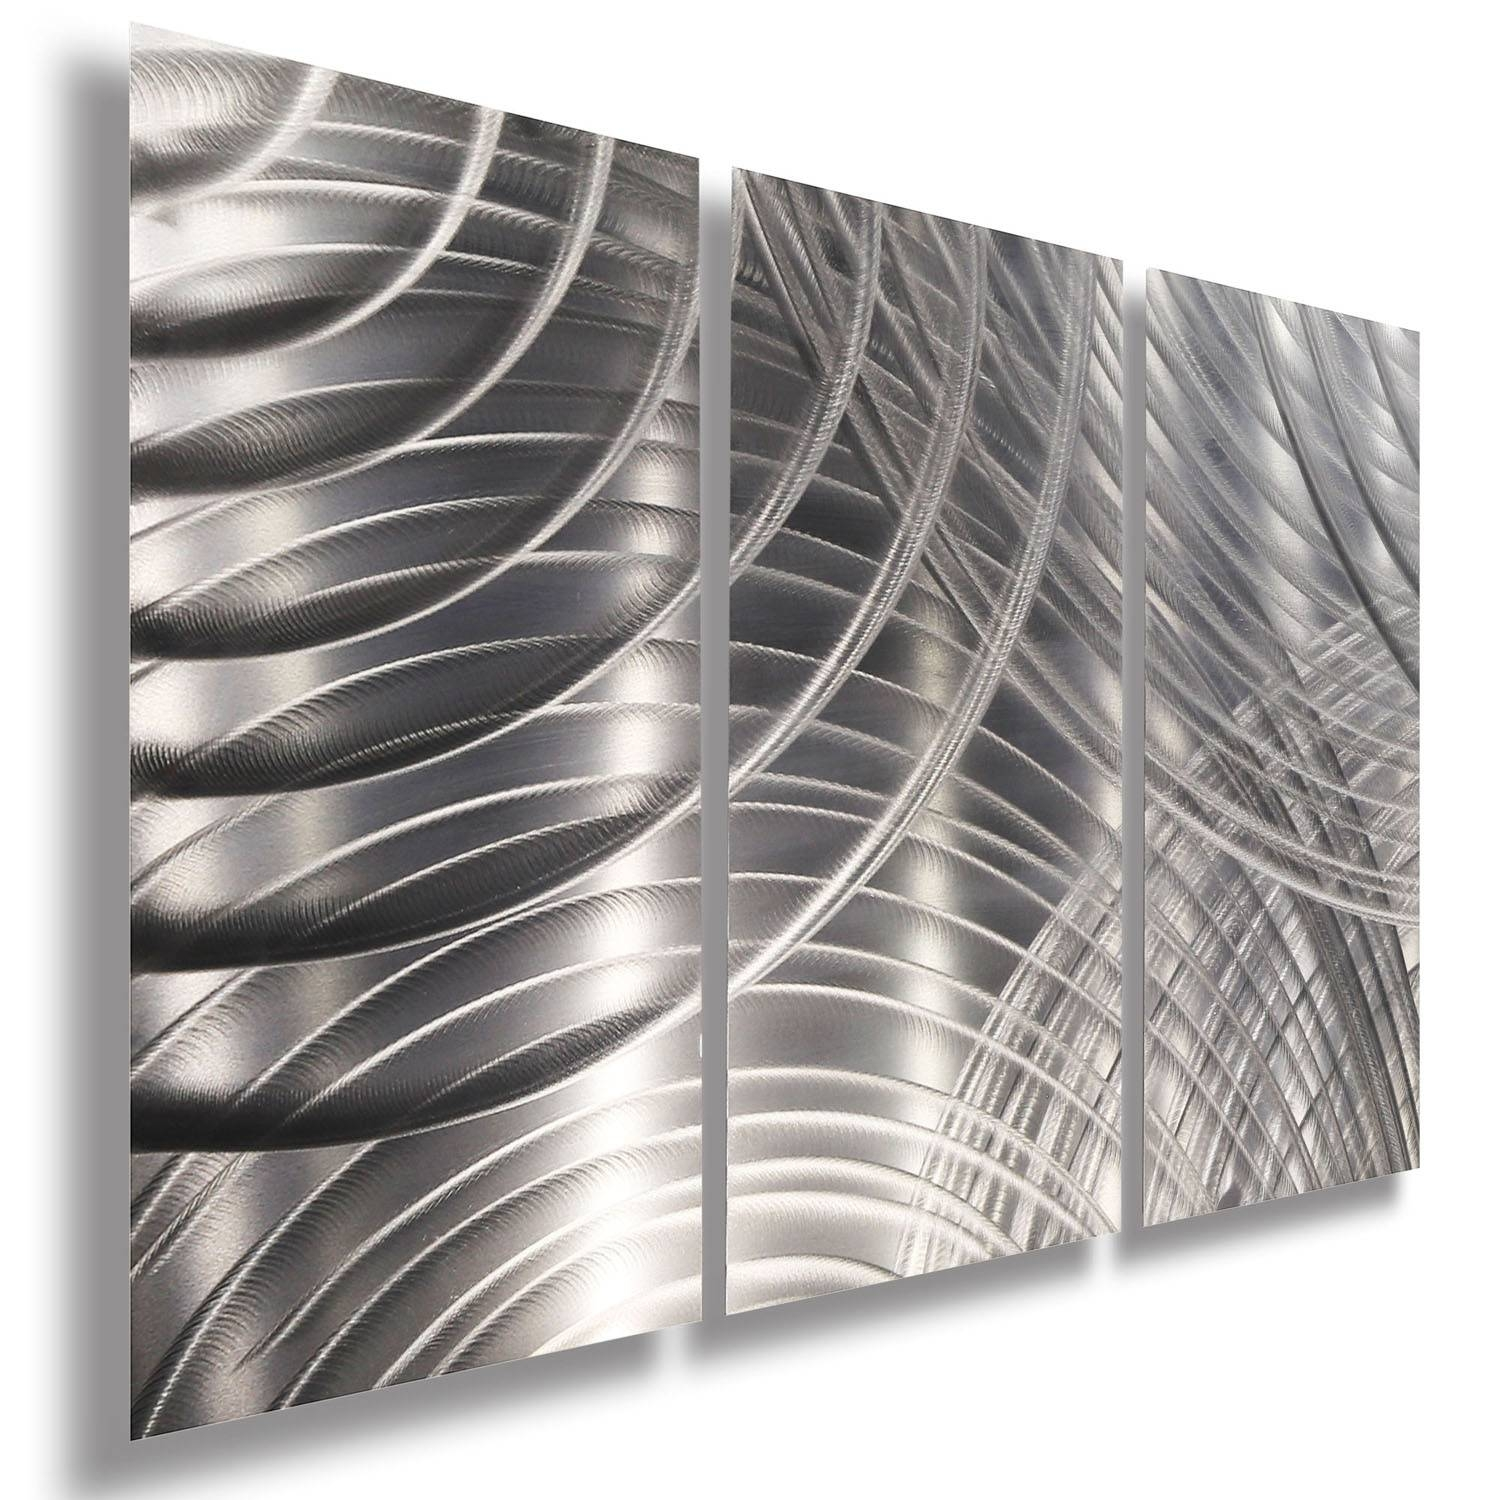 Equinox Ii 3P – All Silver 3 Panel Metal Wall Art Accentjon With Regard To Best And Newest Etched Metal Wall Art (View 3 of 20)